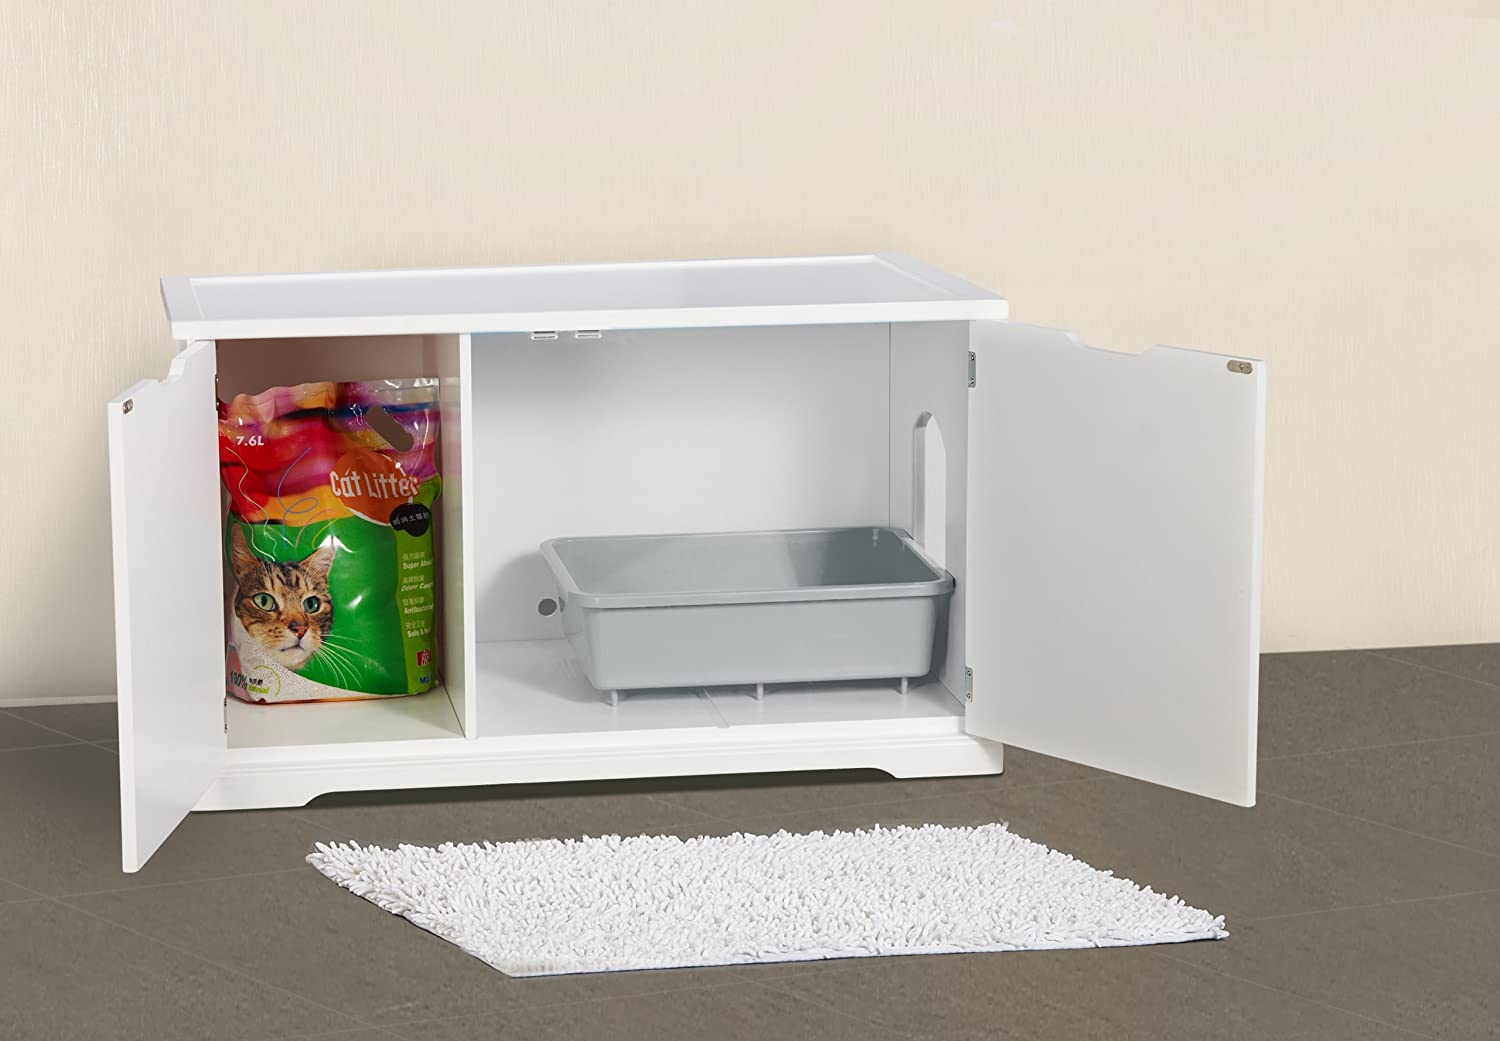 amazoncom merry products cat washroom bench white cat houses and condos pet supplies cat litter box covers